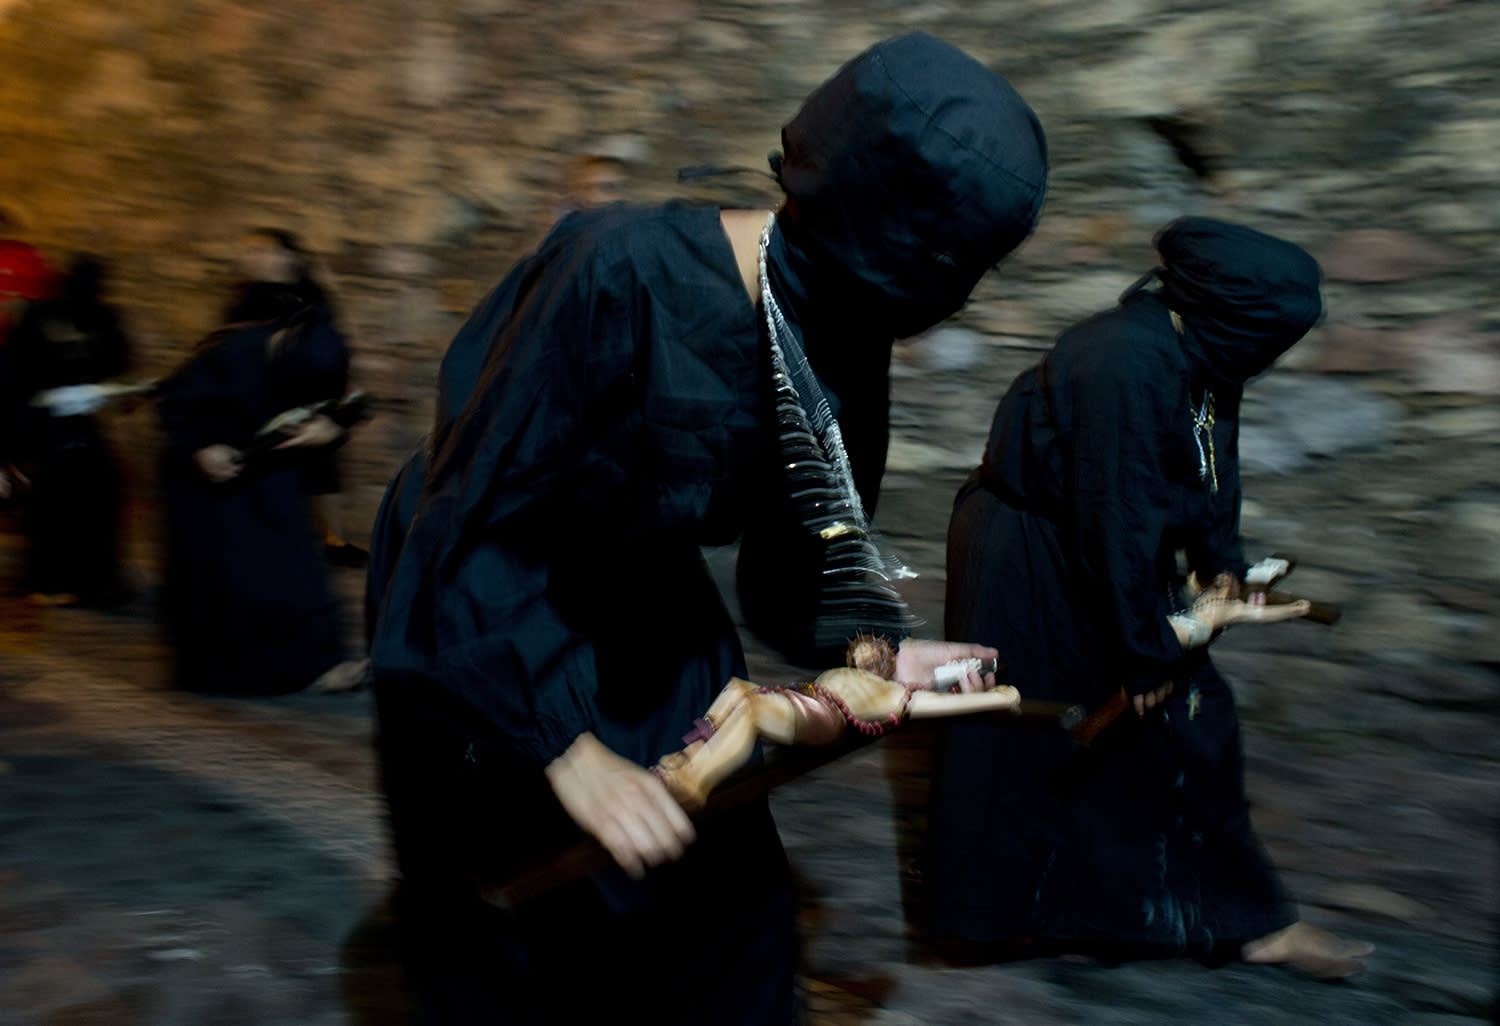 "<p>Hooded women, known as ""encorvadas"" or hunchbacks, walk barefoot through the cobblestone streets, dragging chains and carrying crucifixes, during a Holy Week procession in Taxco, Mexico, just after midnight on the morning, April 14, 2017. Thousands of tourists attend the elaborate Holy Week parades in Taxco, appreciating the traditional processions which date back to 1600's. (Photo: Rebecca Blackwell/AP) </p>"